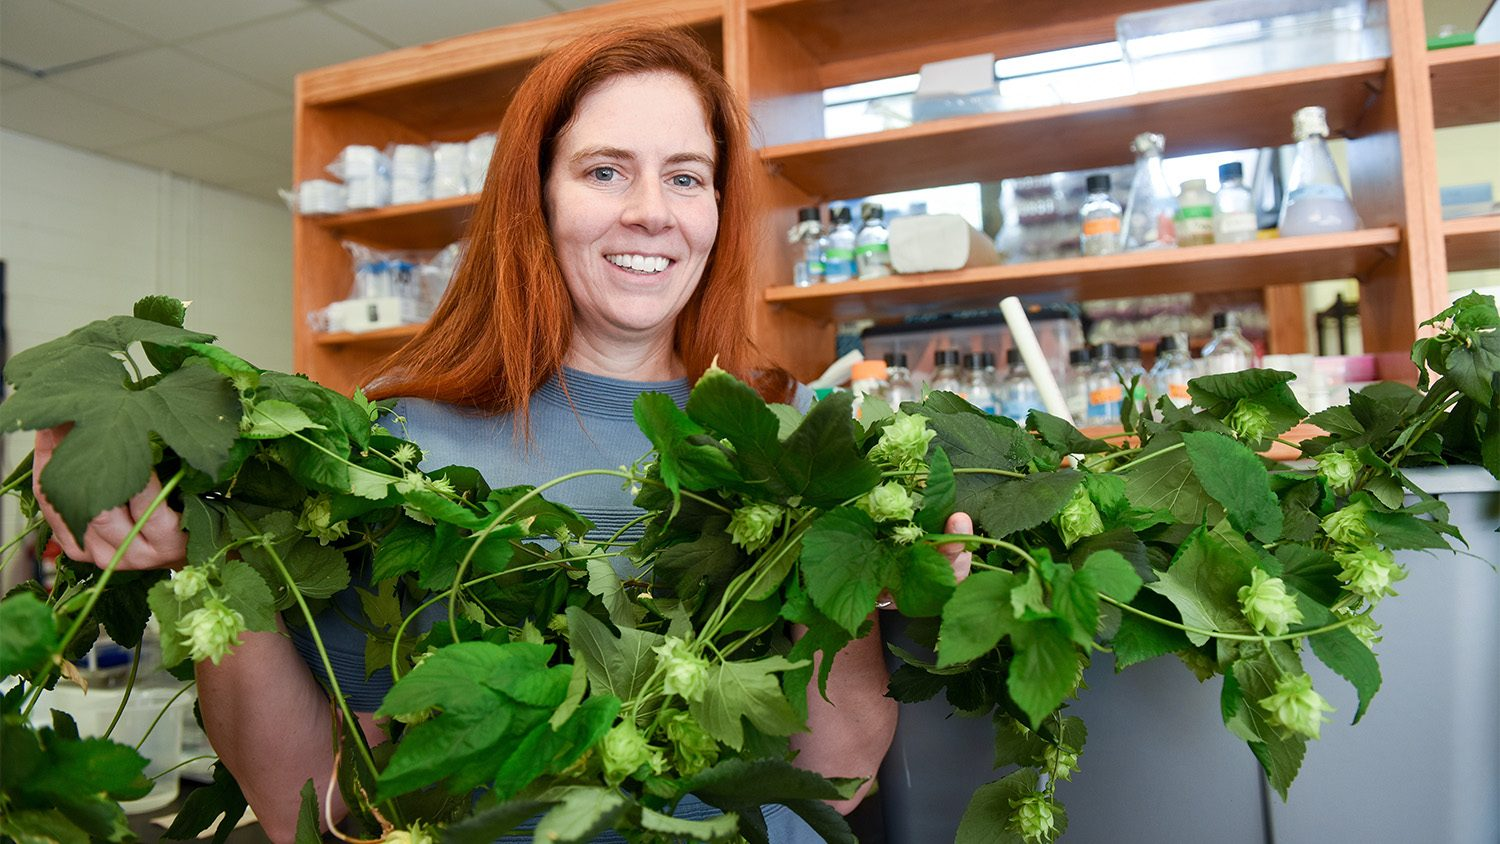 Faculty member Colleen Doherty with plants